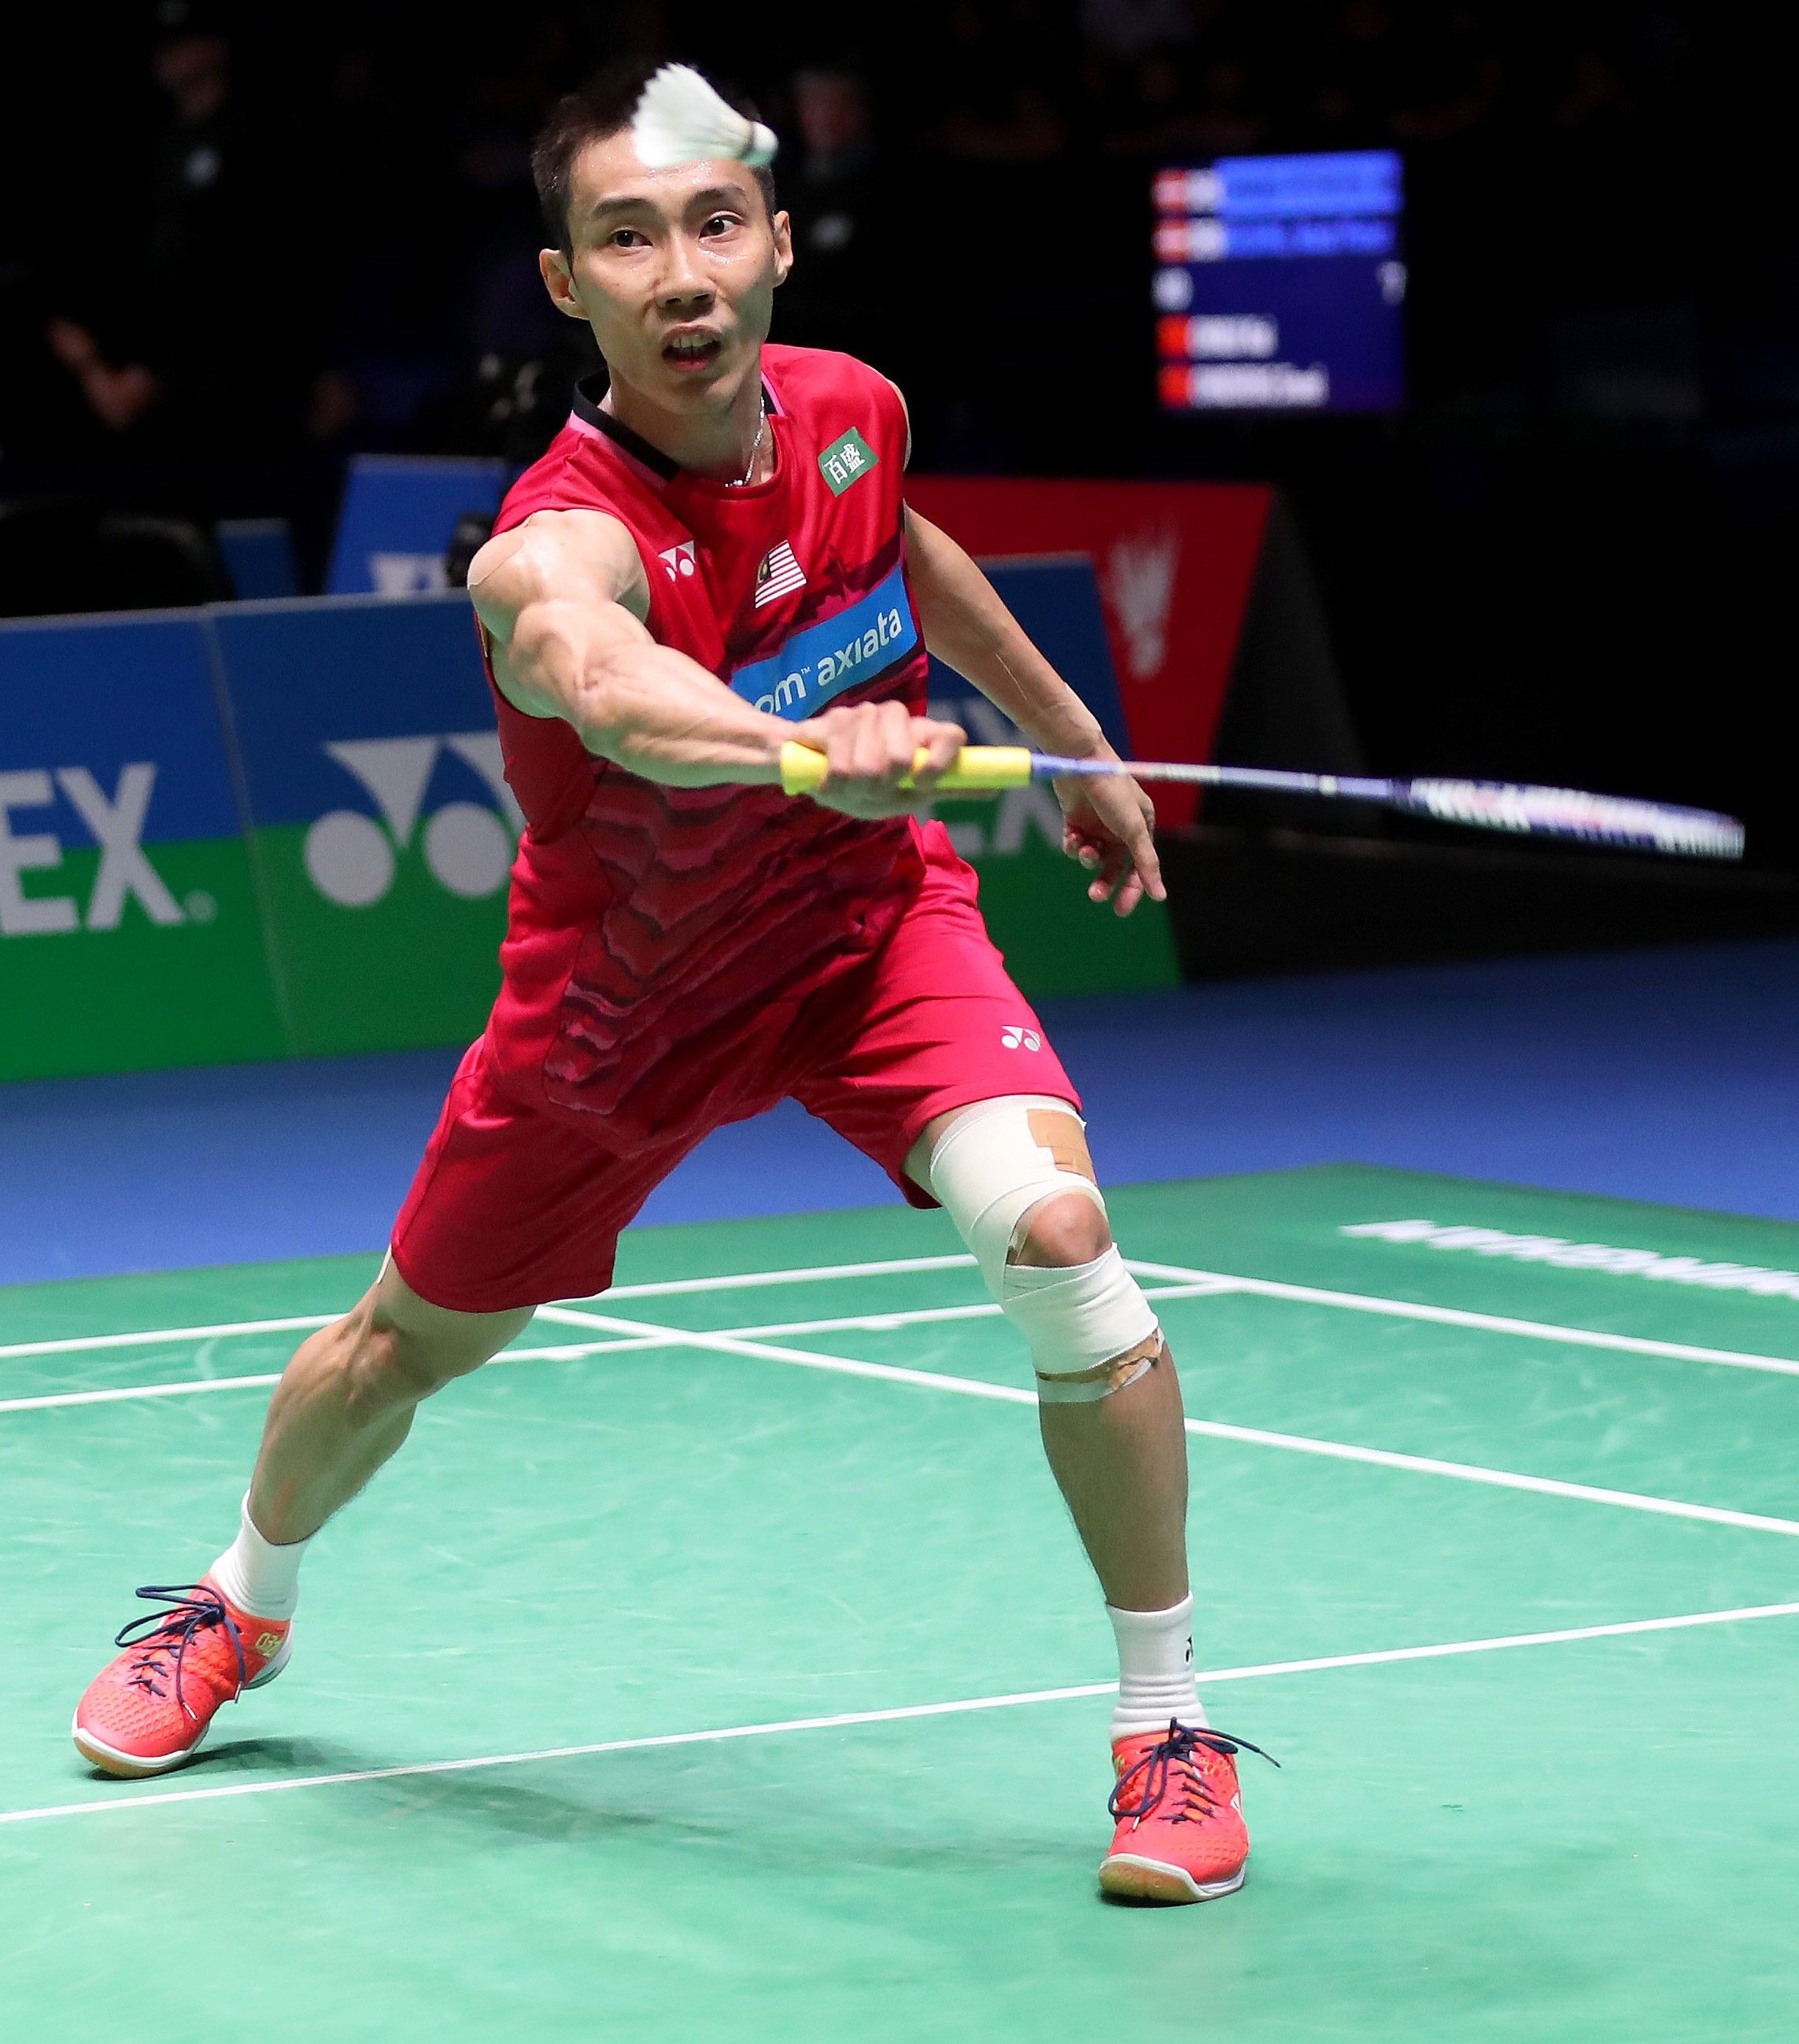 All England 2017 - Day 4 - Lee Chong Wei - Malaysia